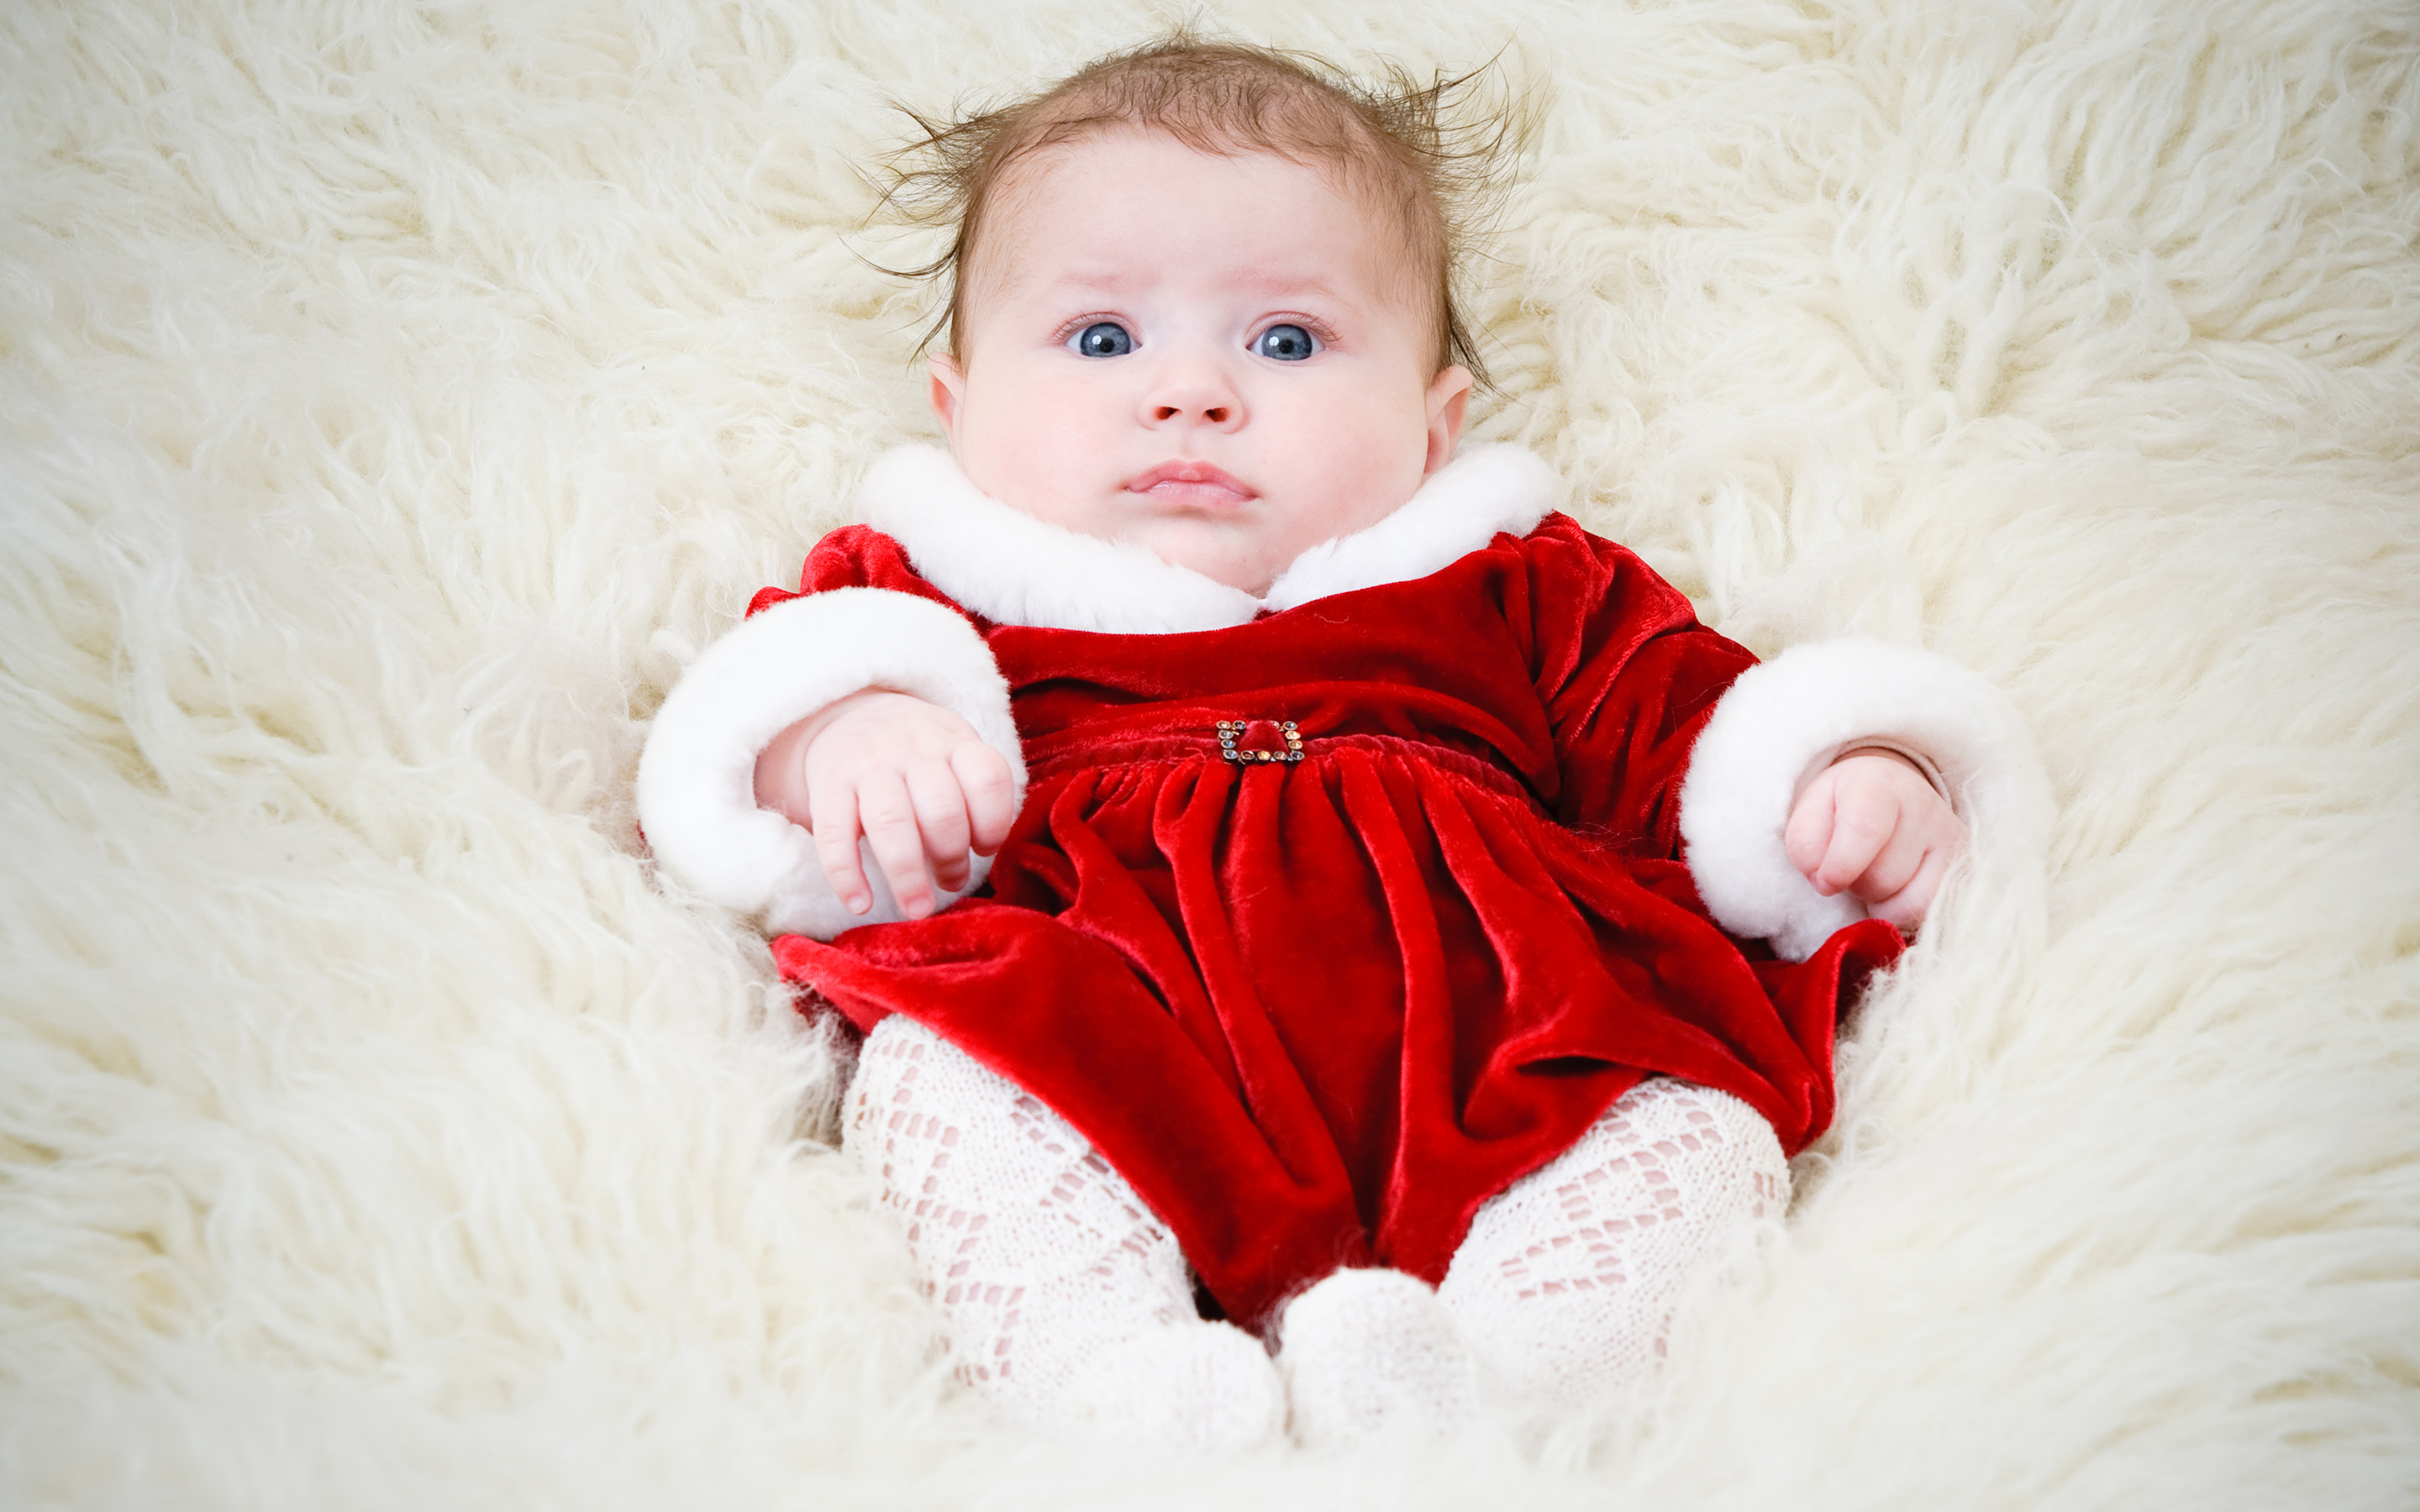 Adorable Cute Baby Girl Wallpapers HD Wallpapers 2880x1800